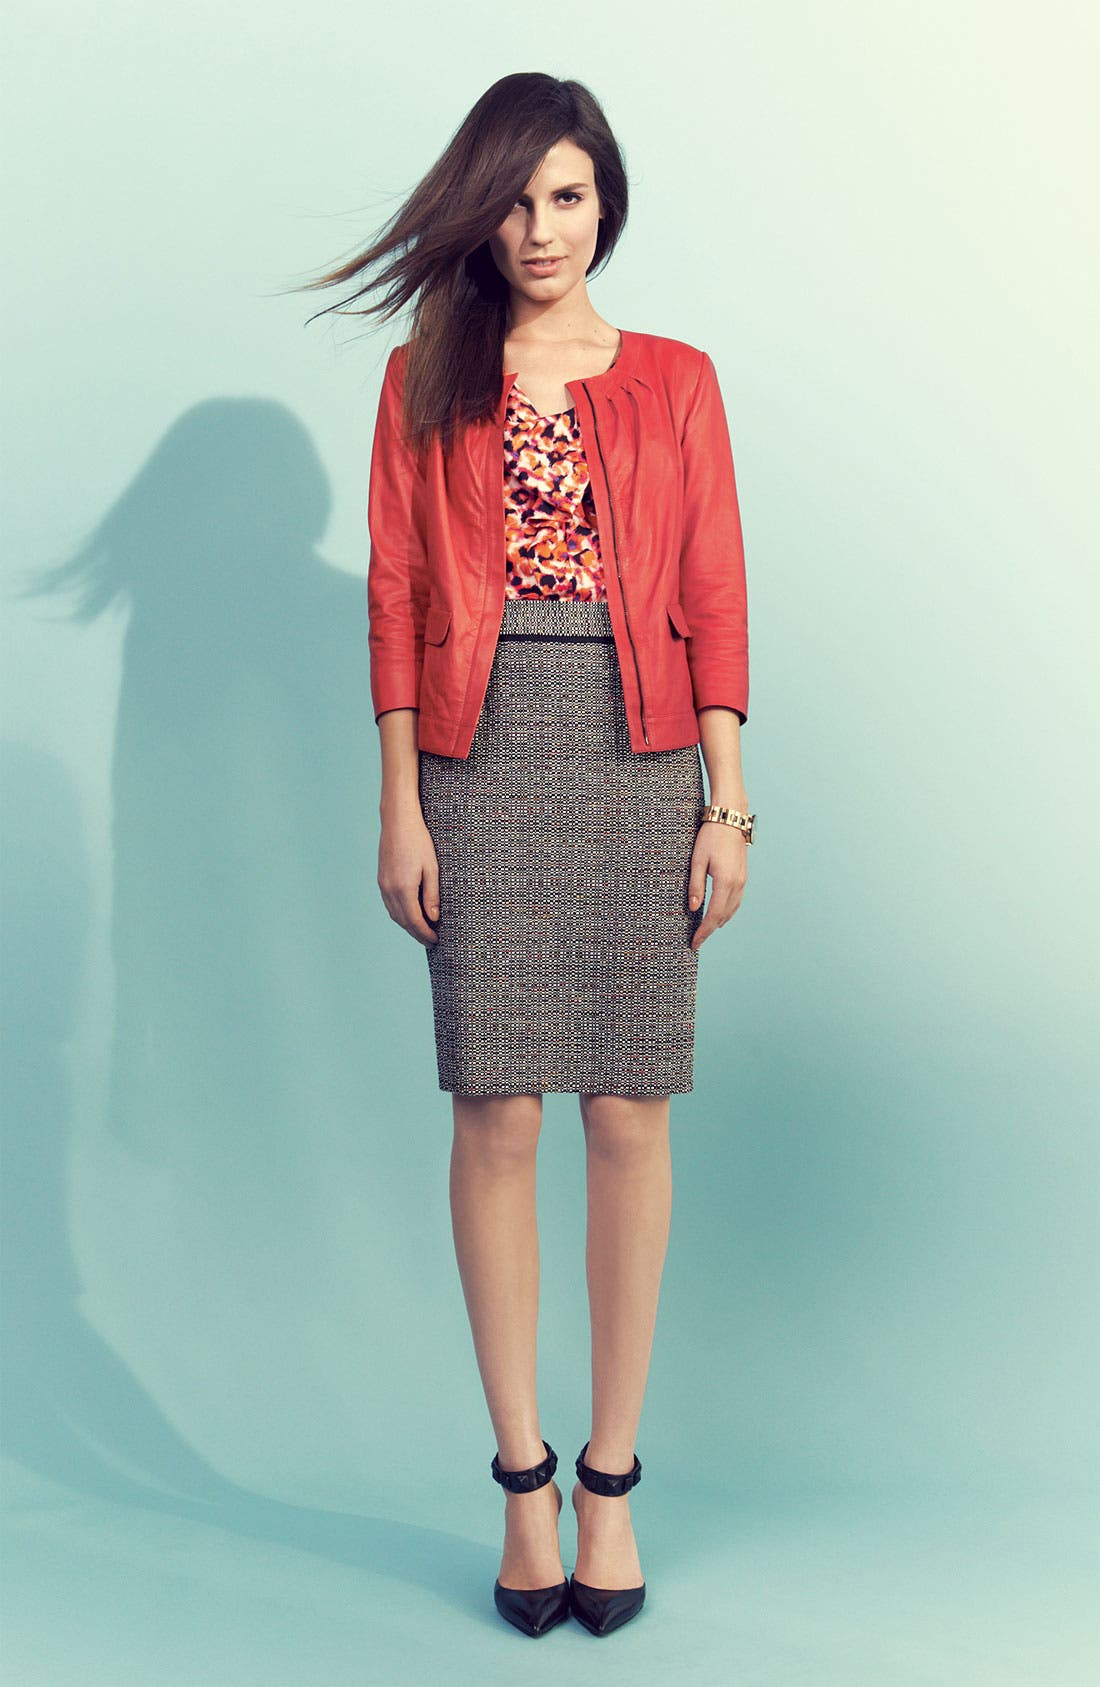 Main Image - Classiques Entier Leather Jacket, Silk Top & Tweed Skirt